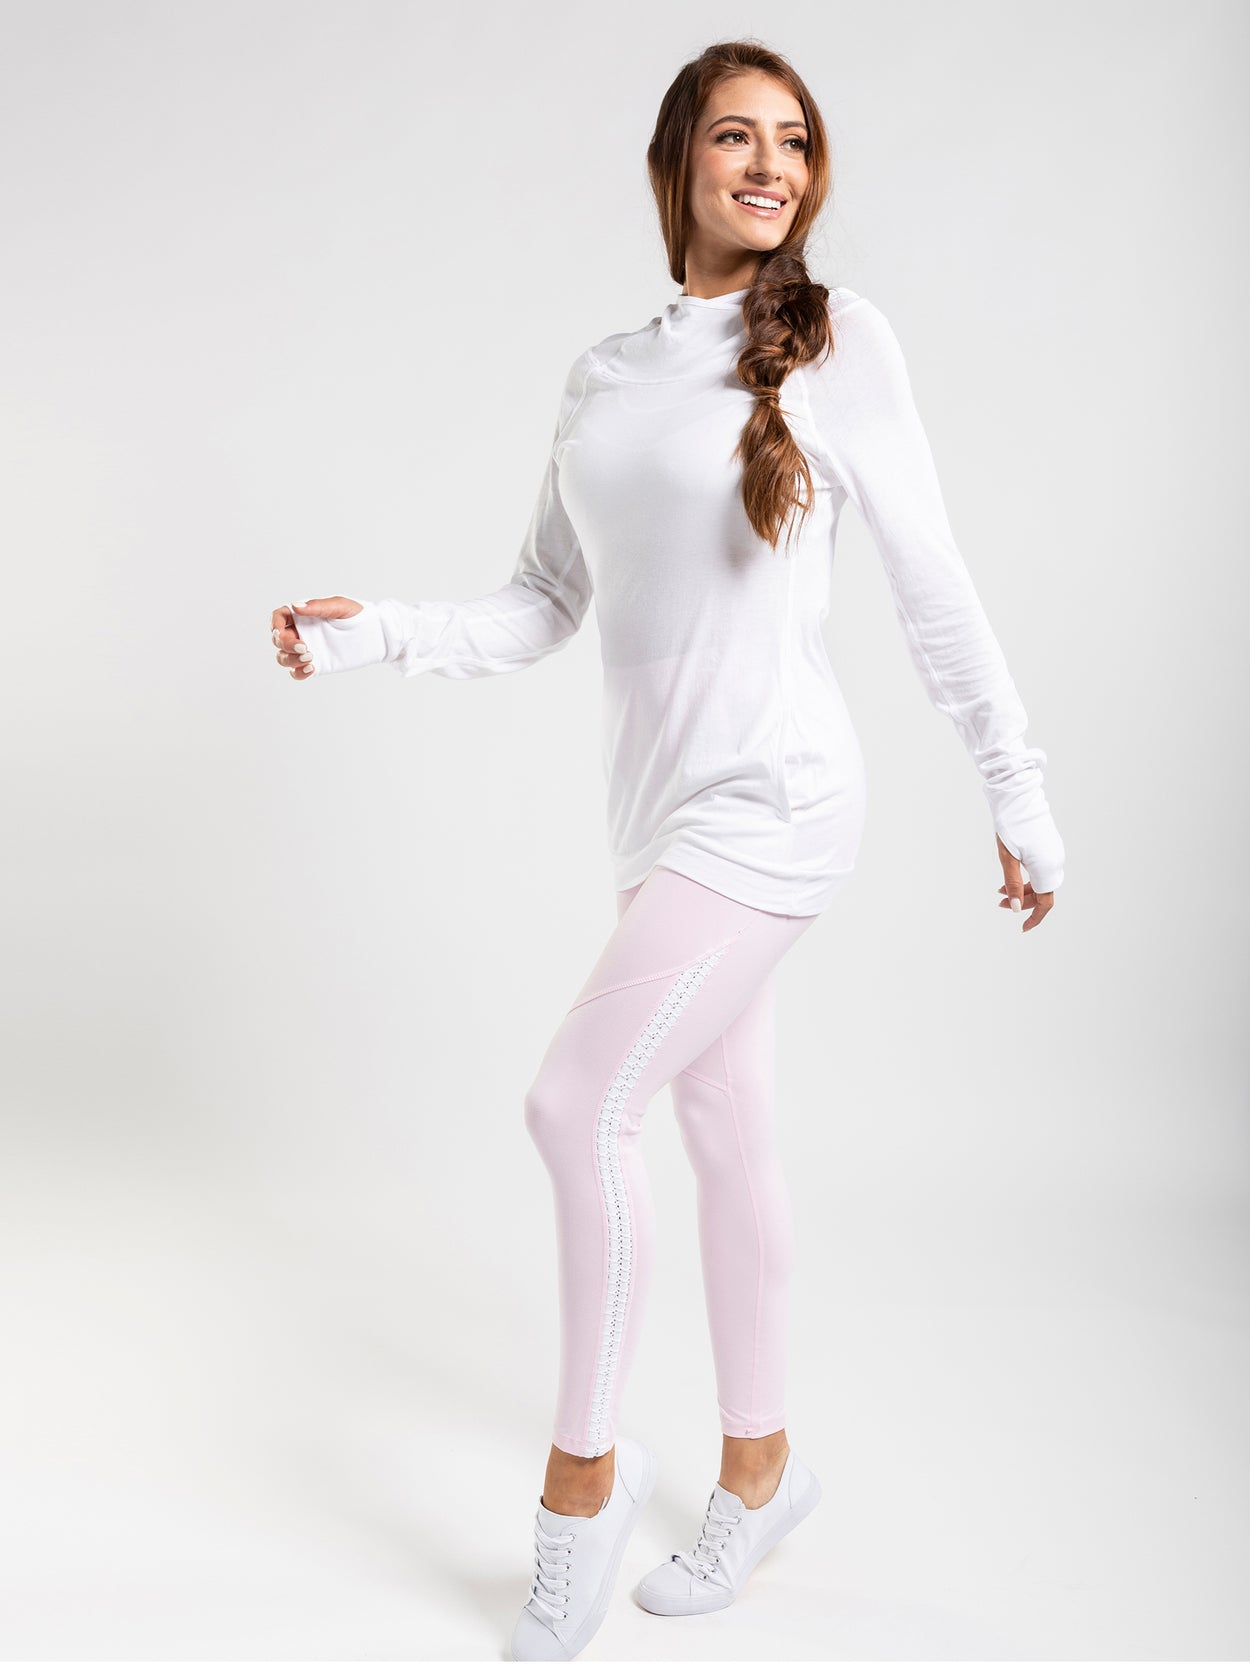 Soft, pink leggings with white lace-up side detail.